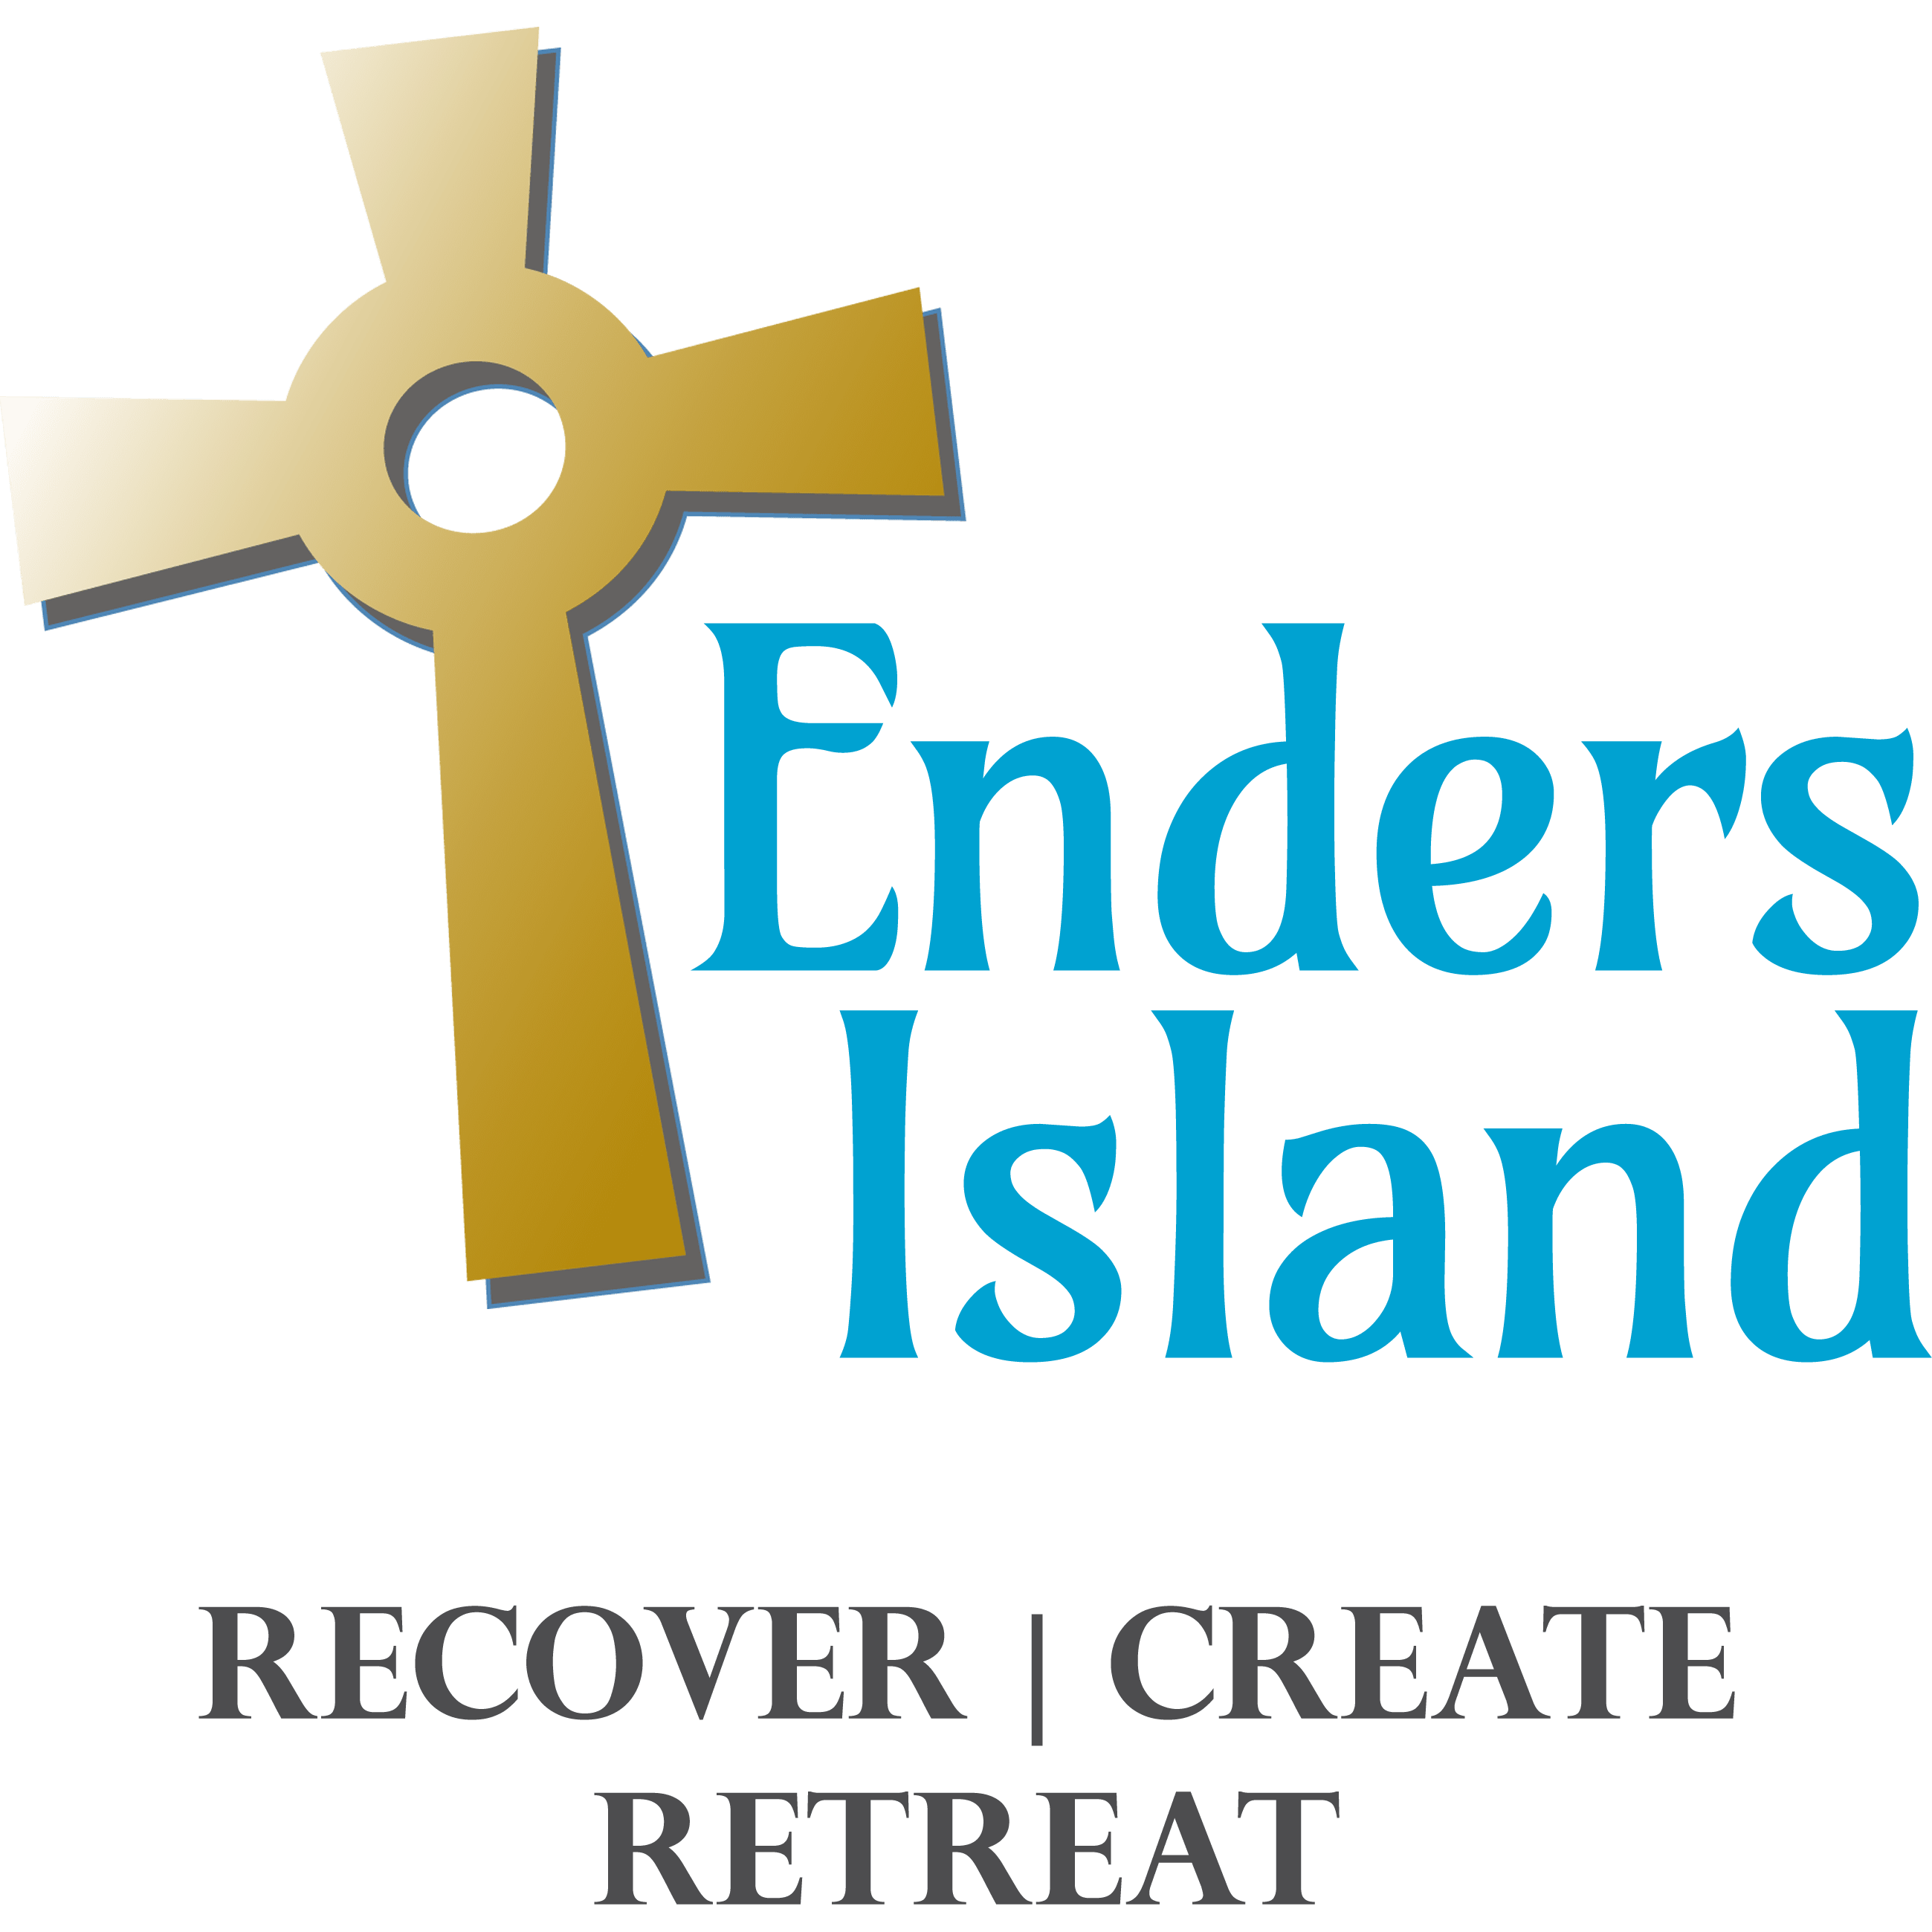 St. Edmund's Retreat, Inc.